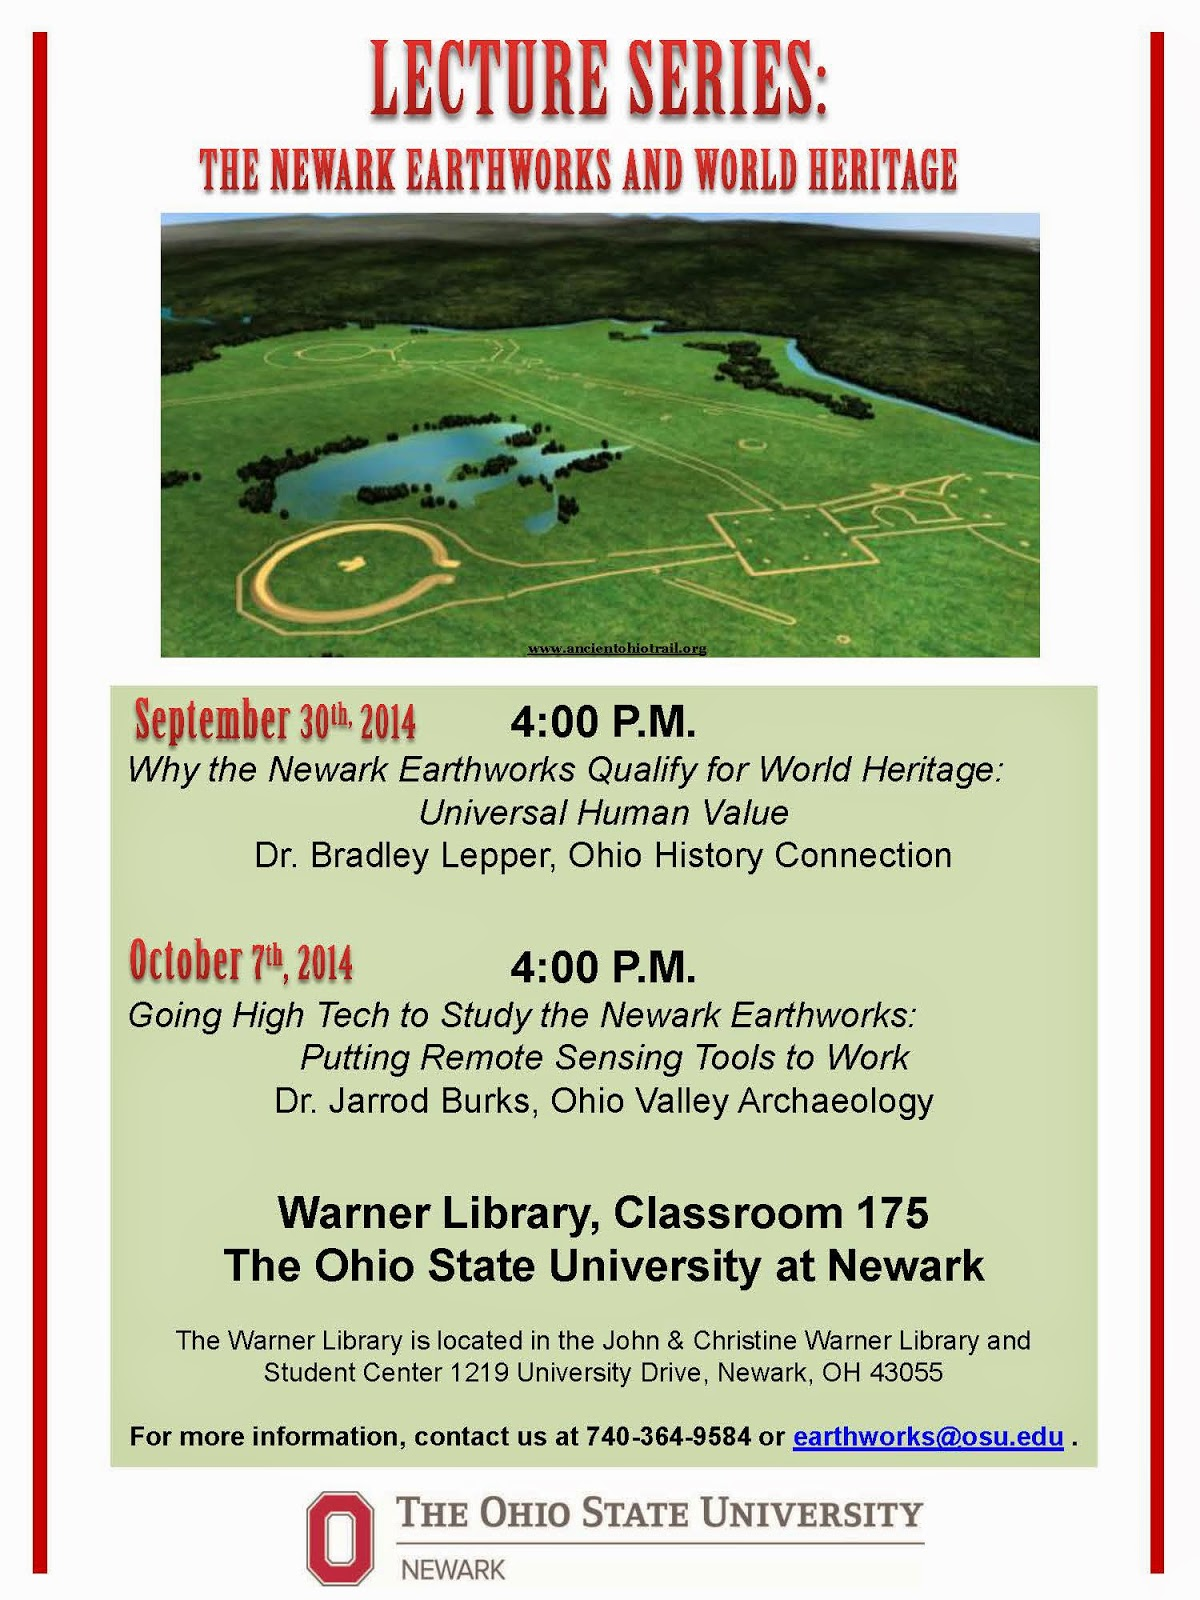 Lecture Series: The Newark Earthworks and World Heritage 2014 Flyer